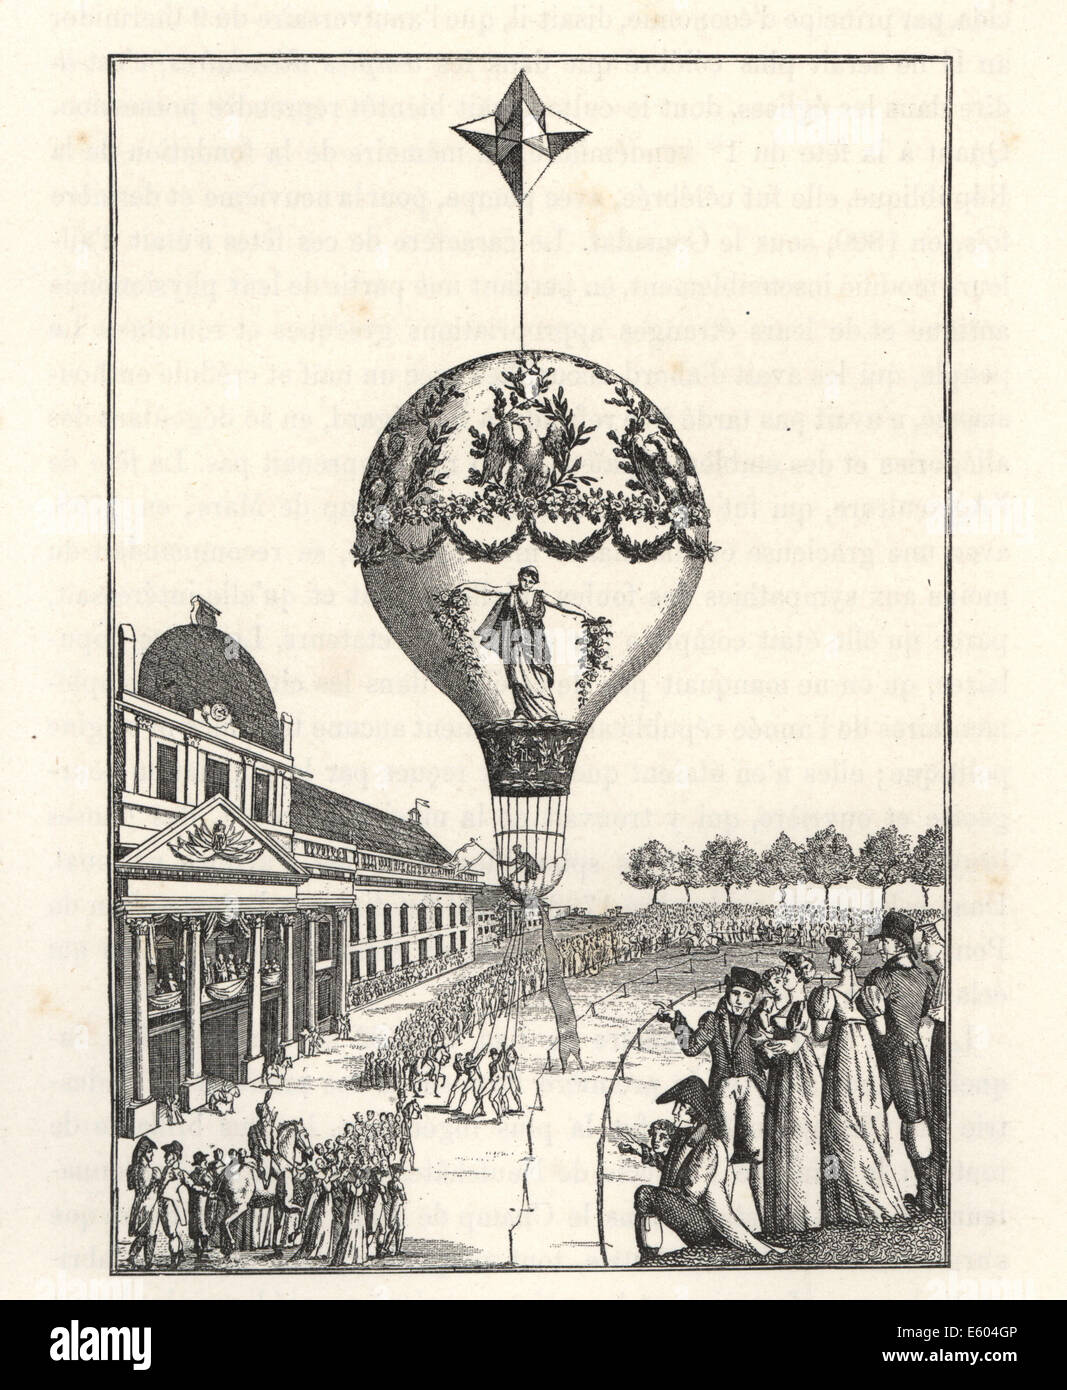 Ascension of a balloon by female balloonist Sophie Blanchard. Stock Photo